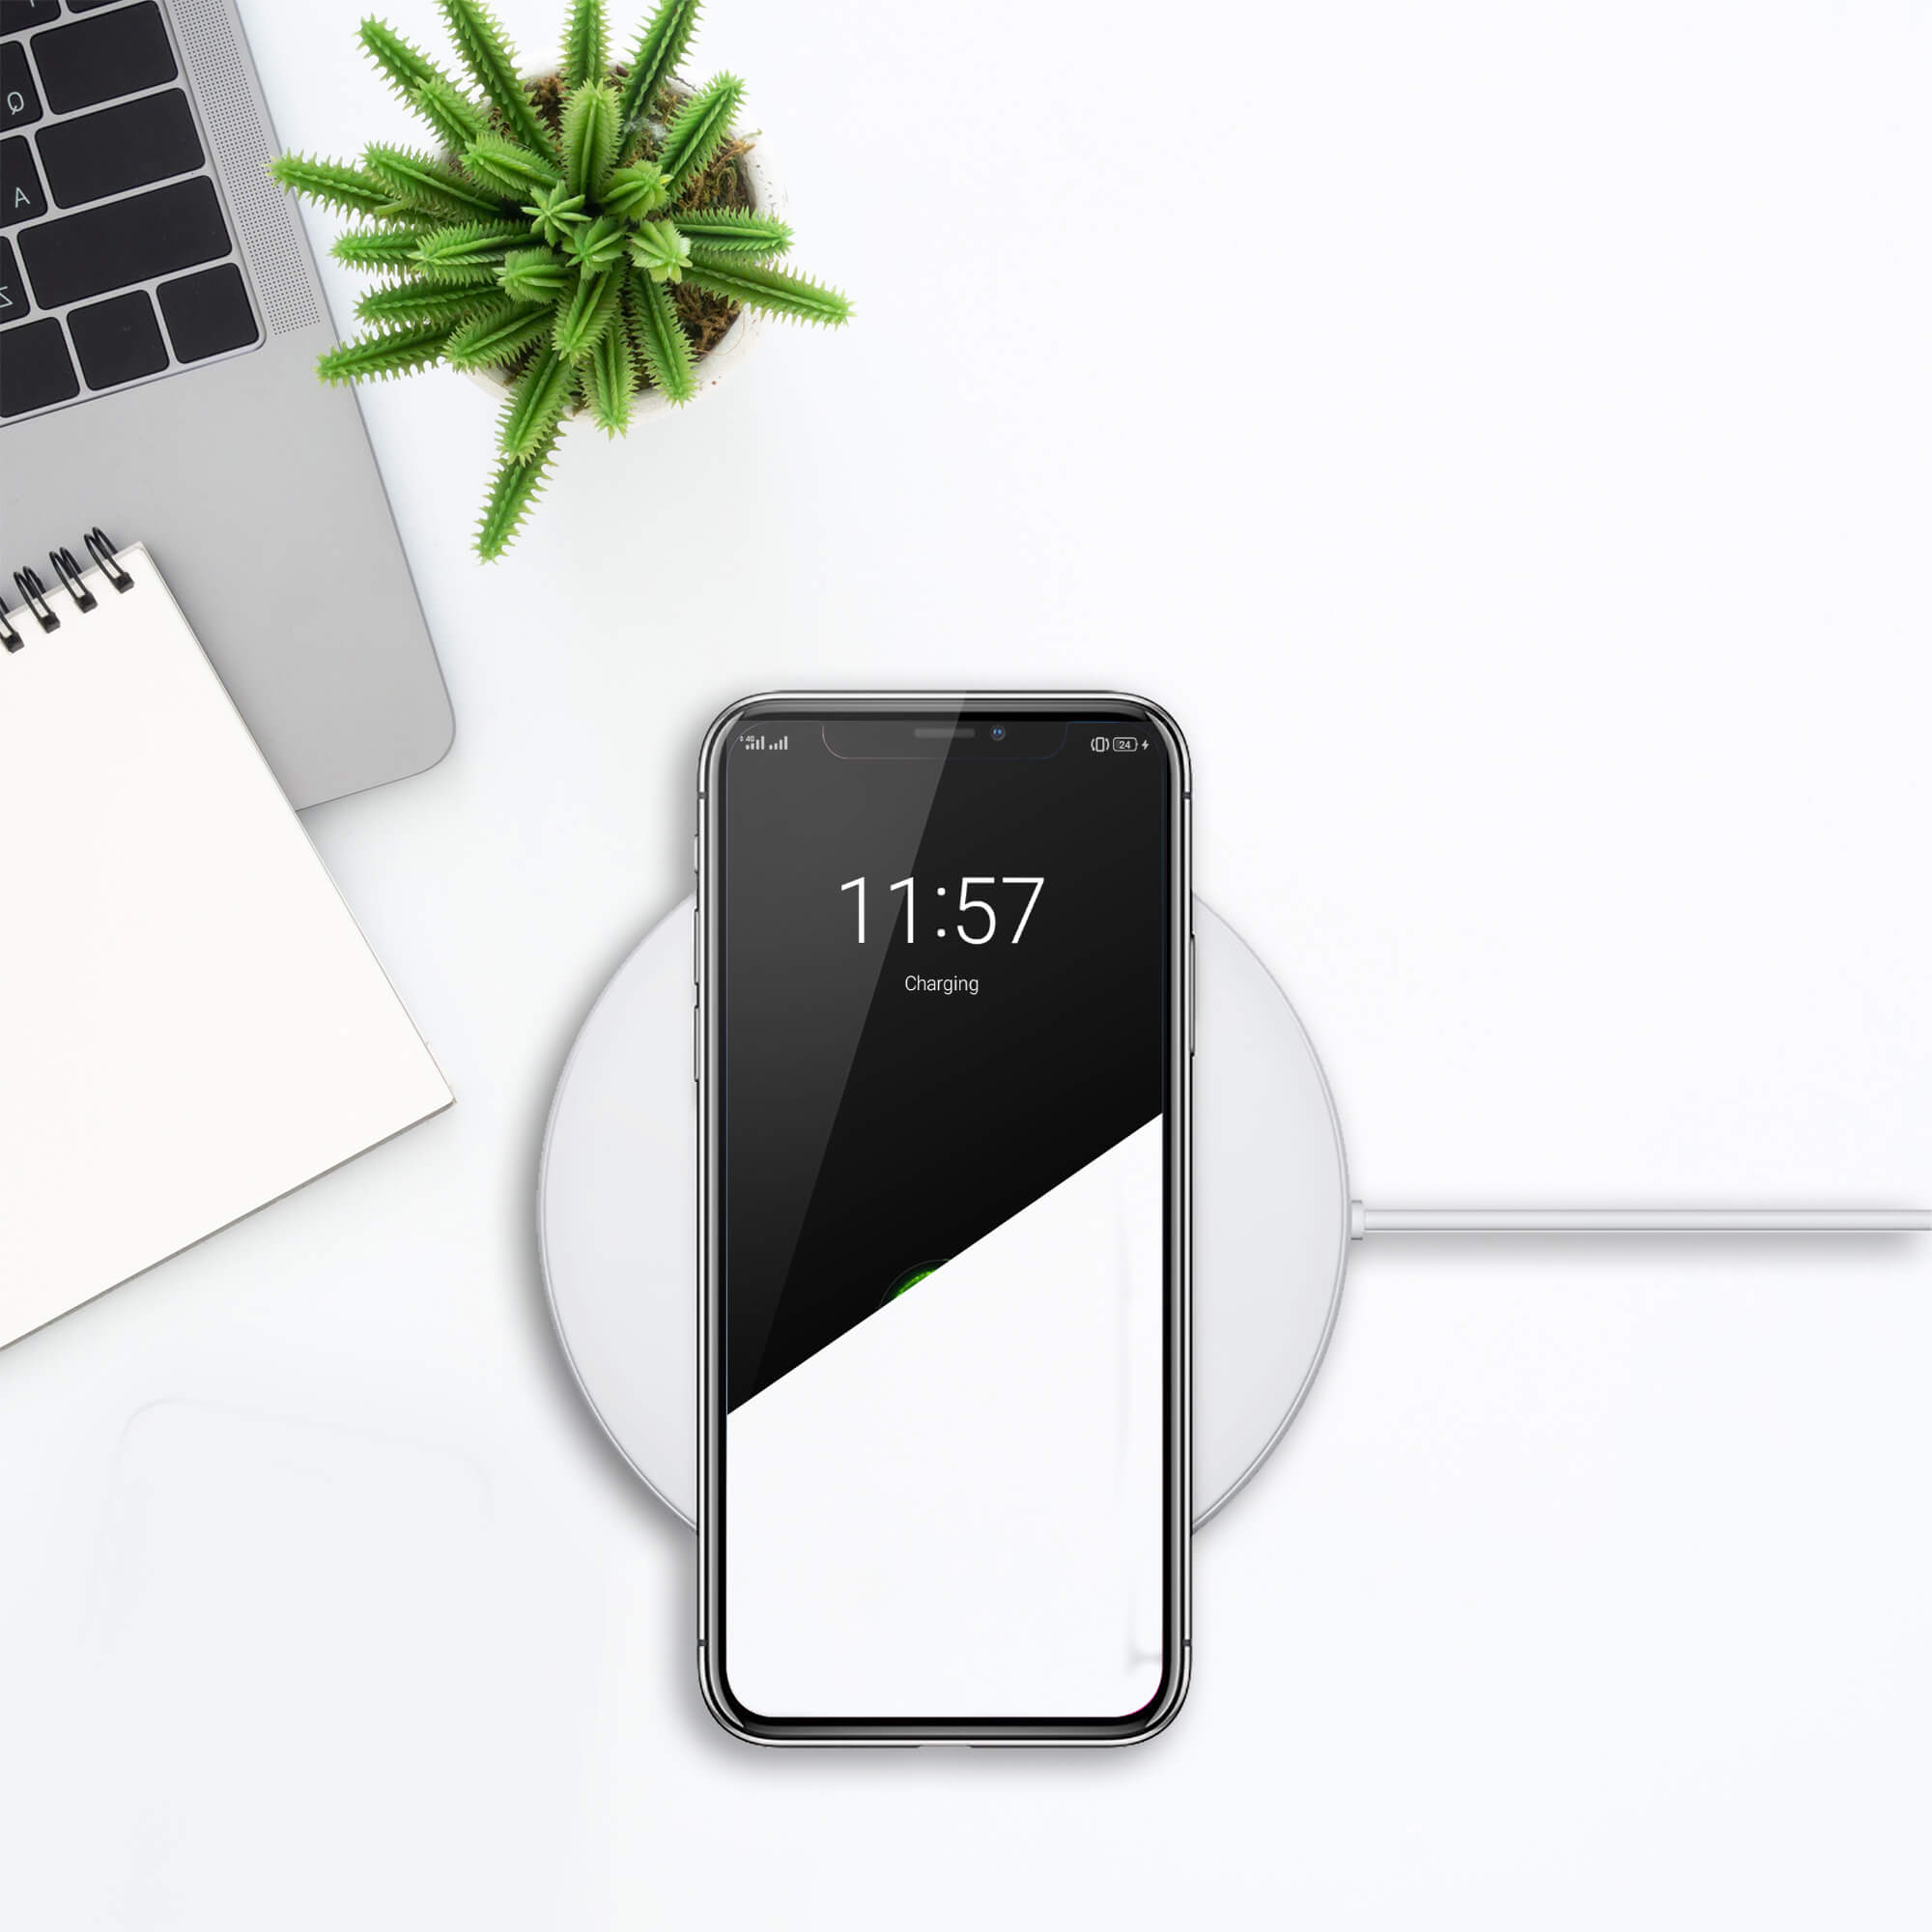 Editable Free Wireless Charger Mockup PSD Template